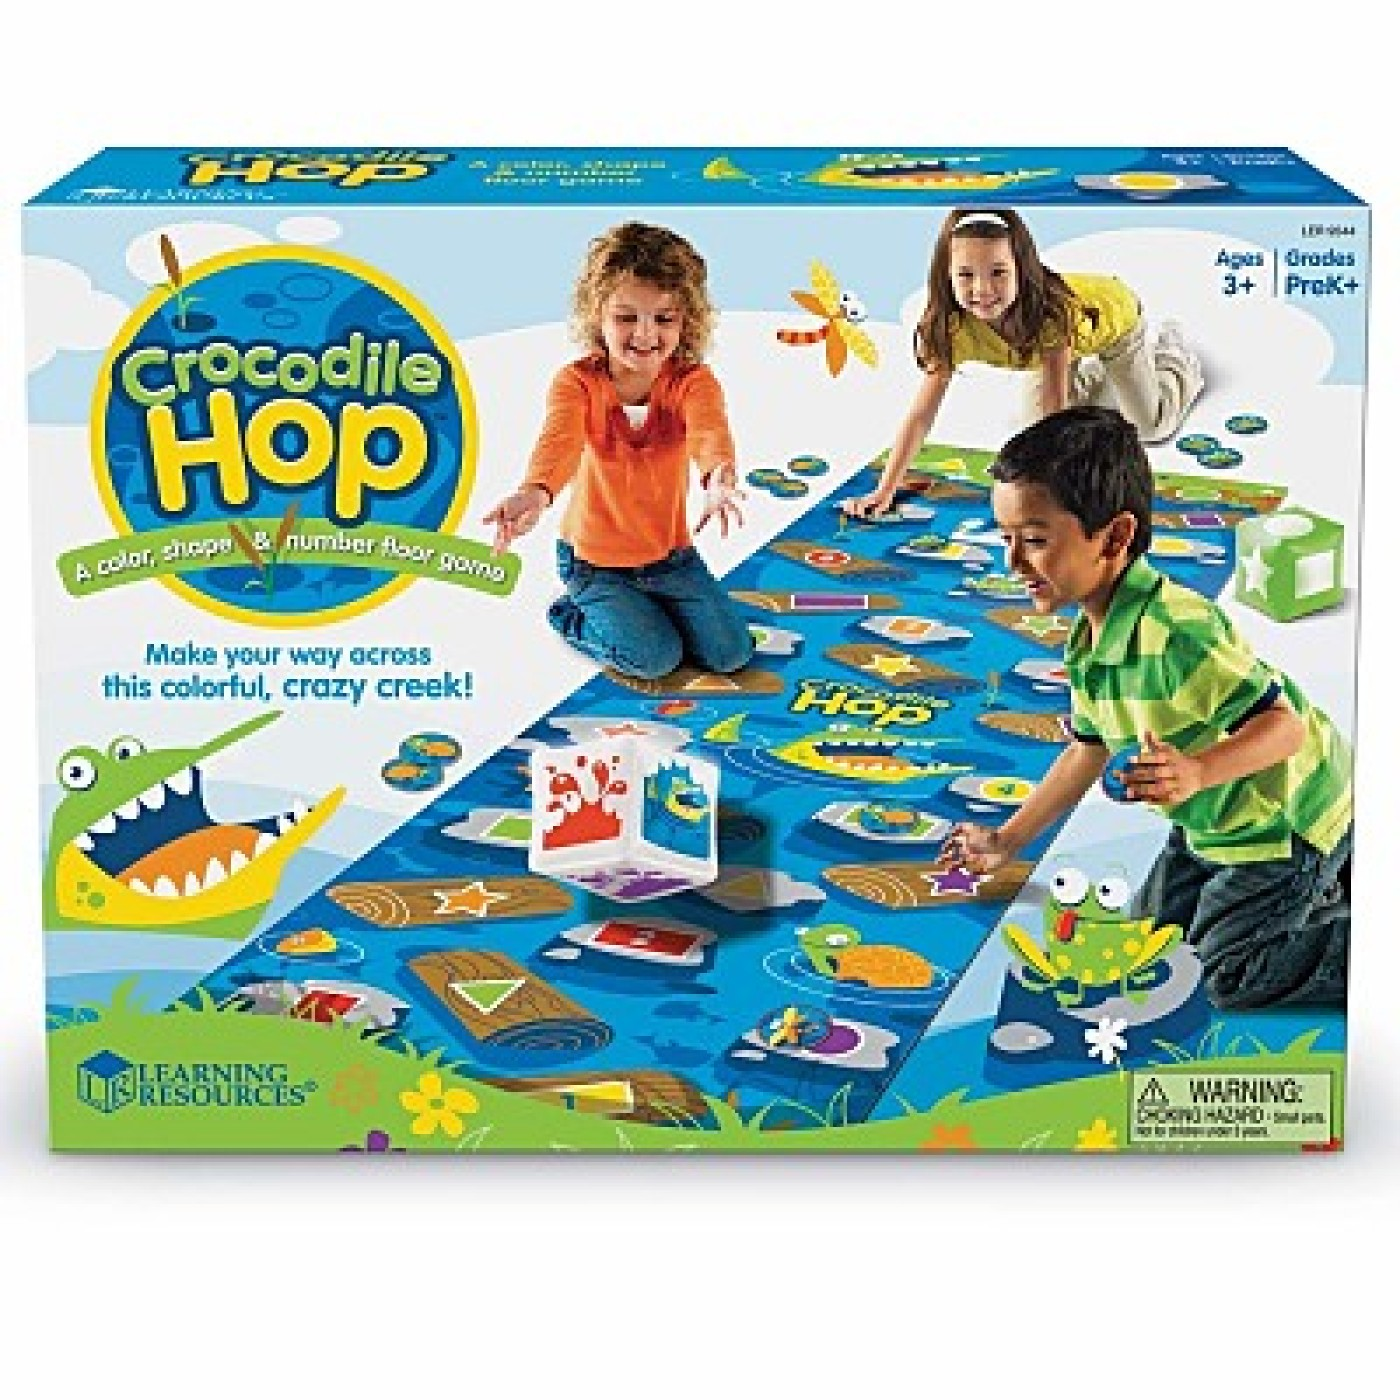 Crocodile Hop Floor Game